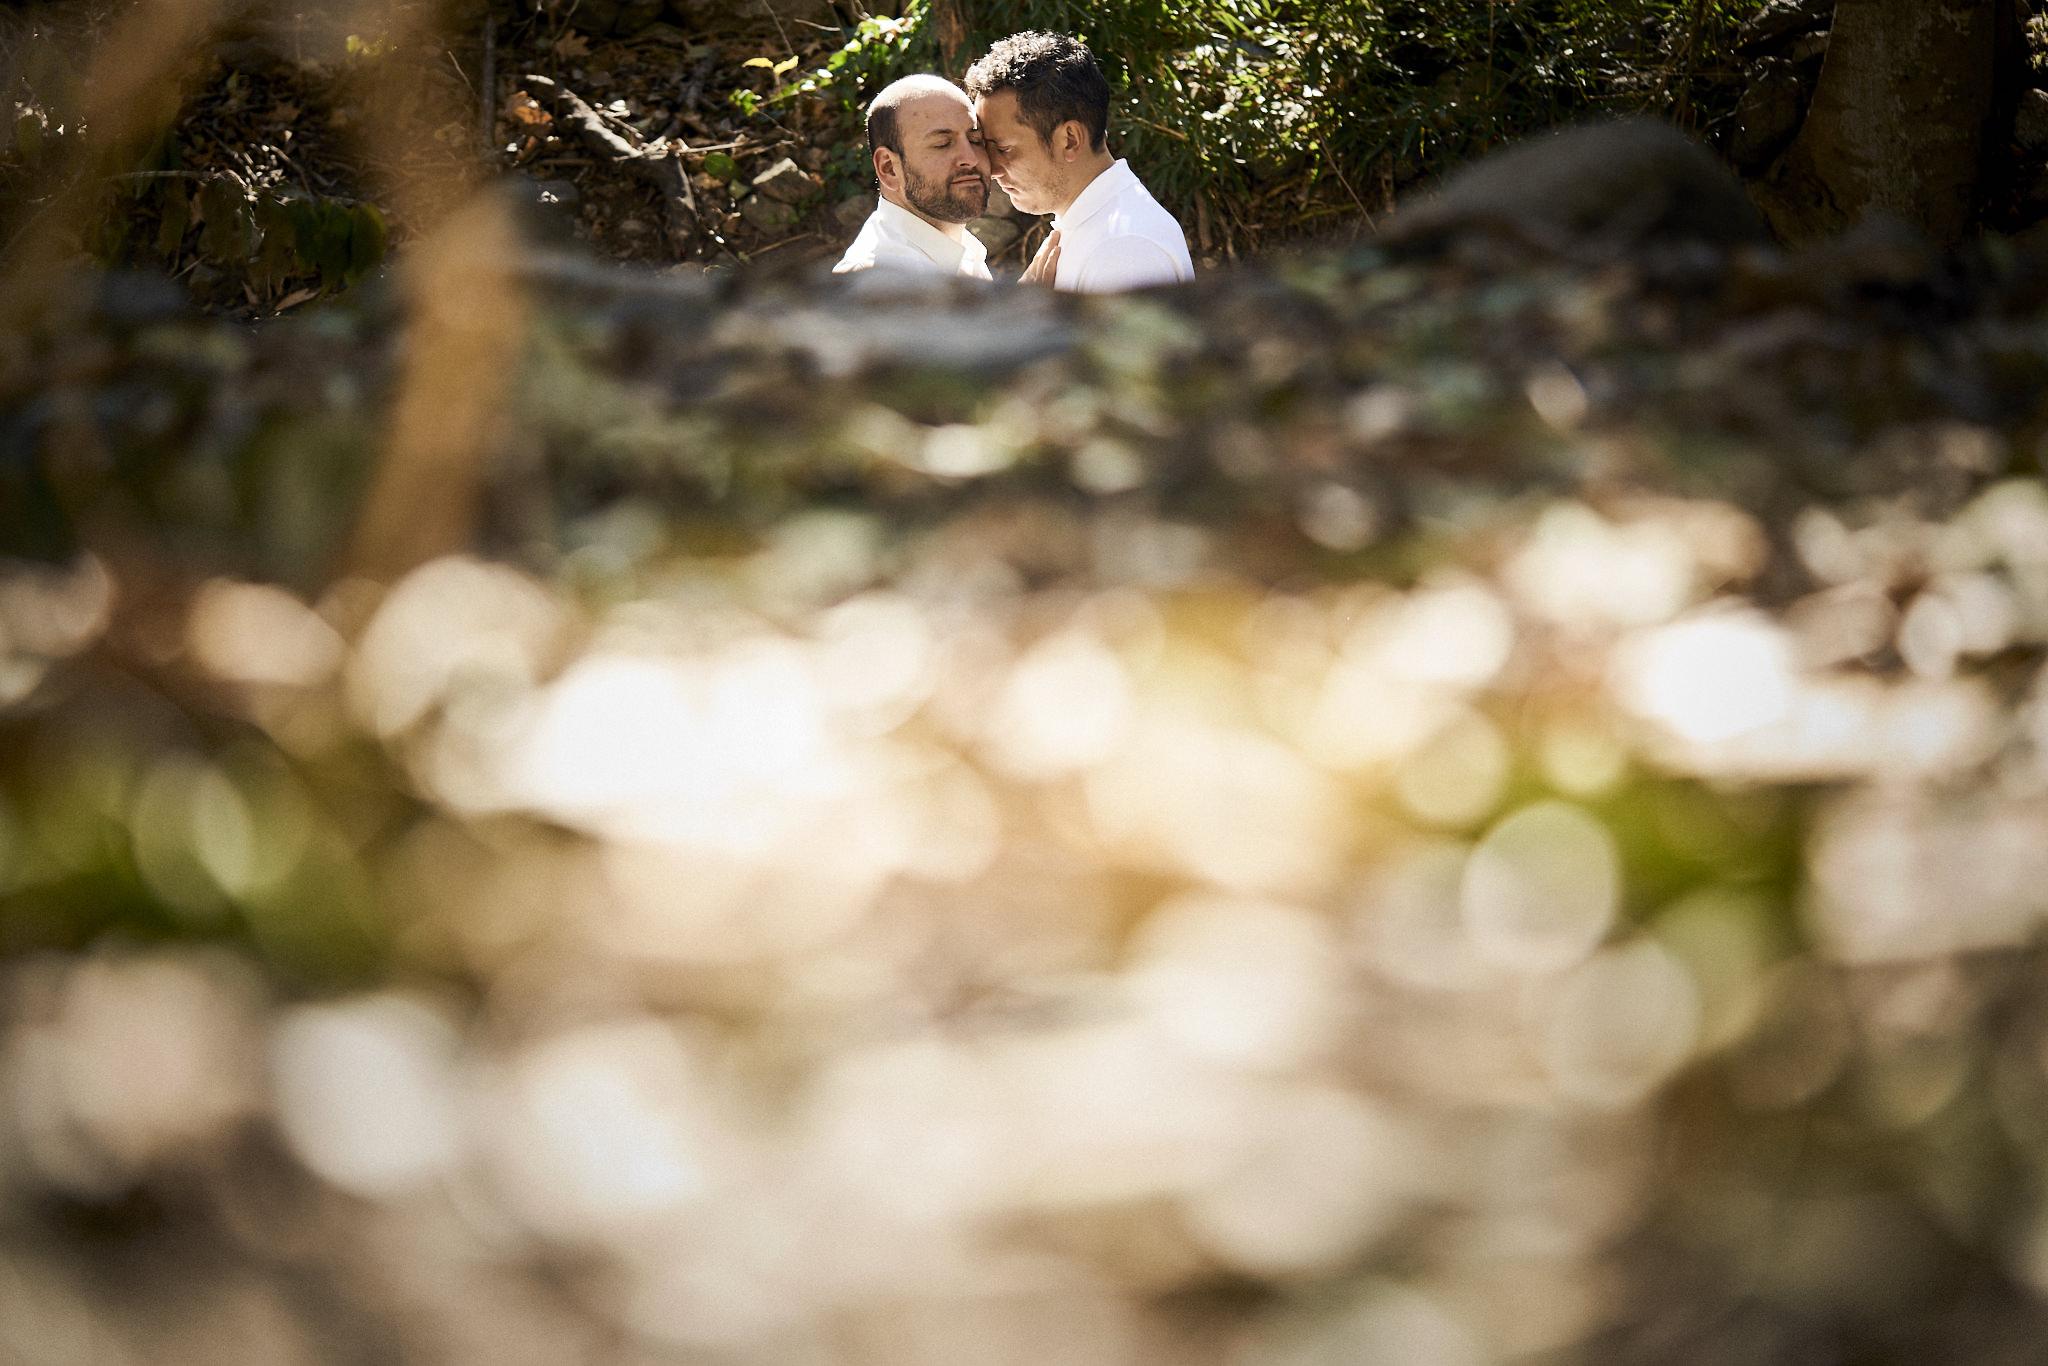 Fotografo de Bodas - Gay Couples - Wedding Photographer LME02370.jpg